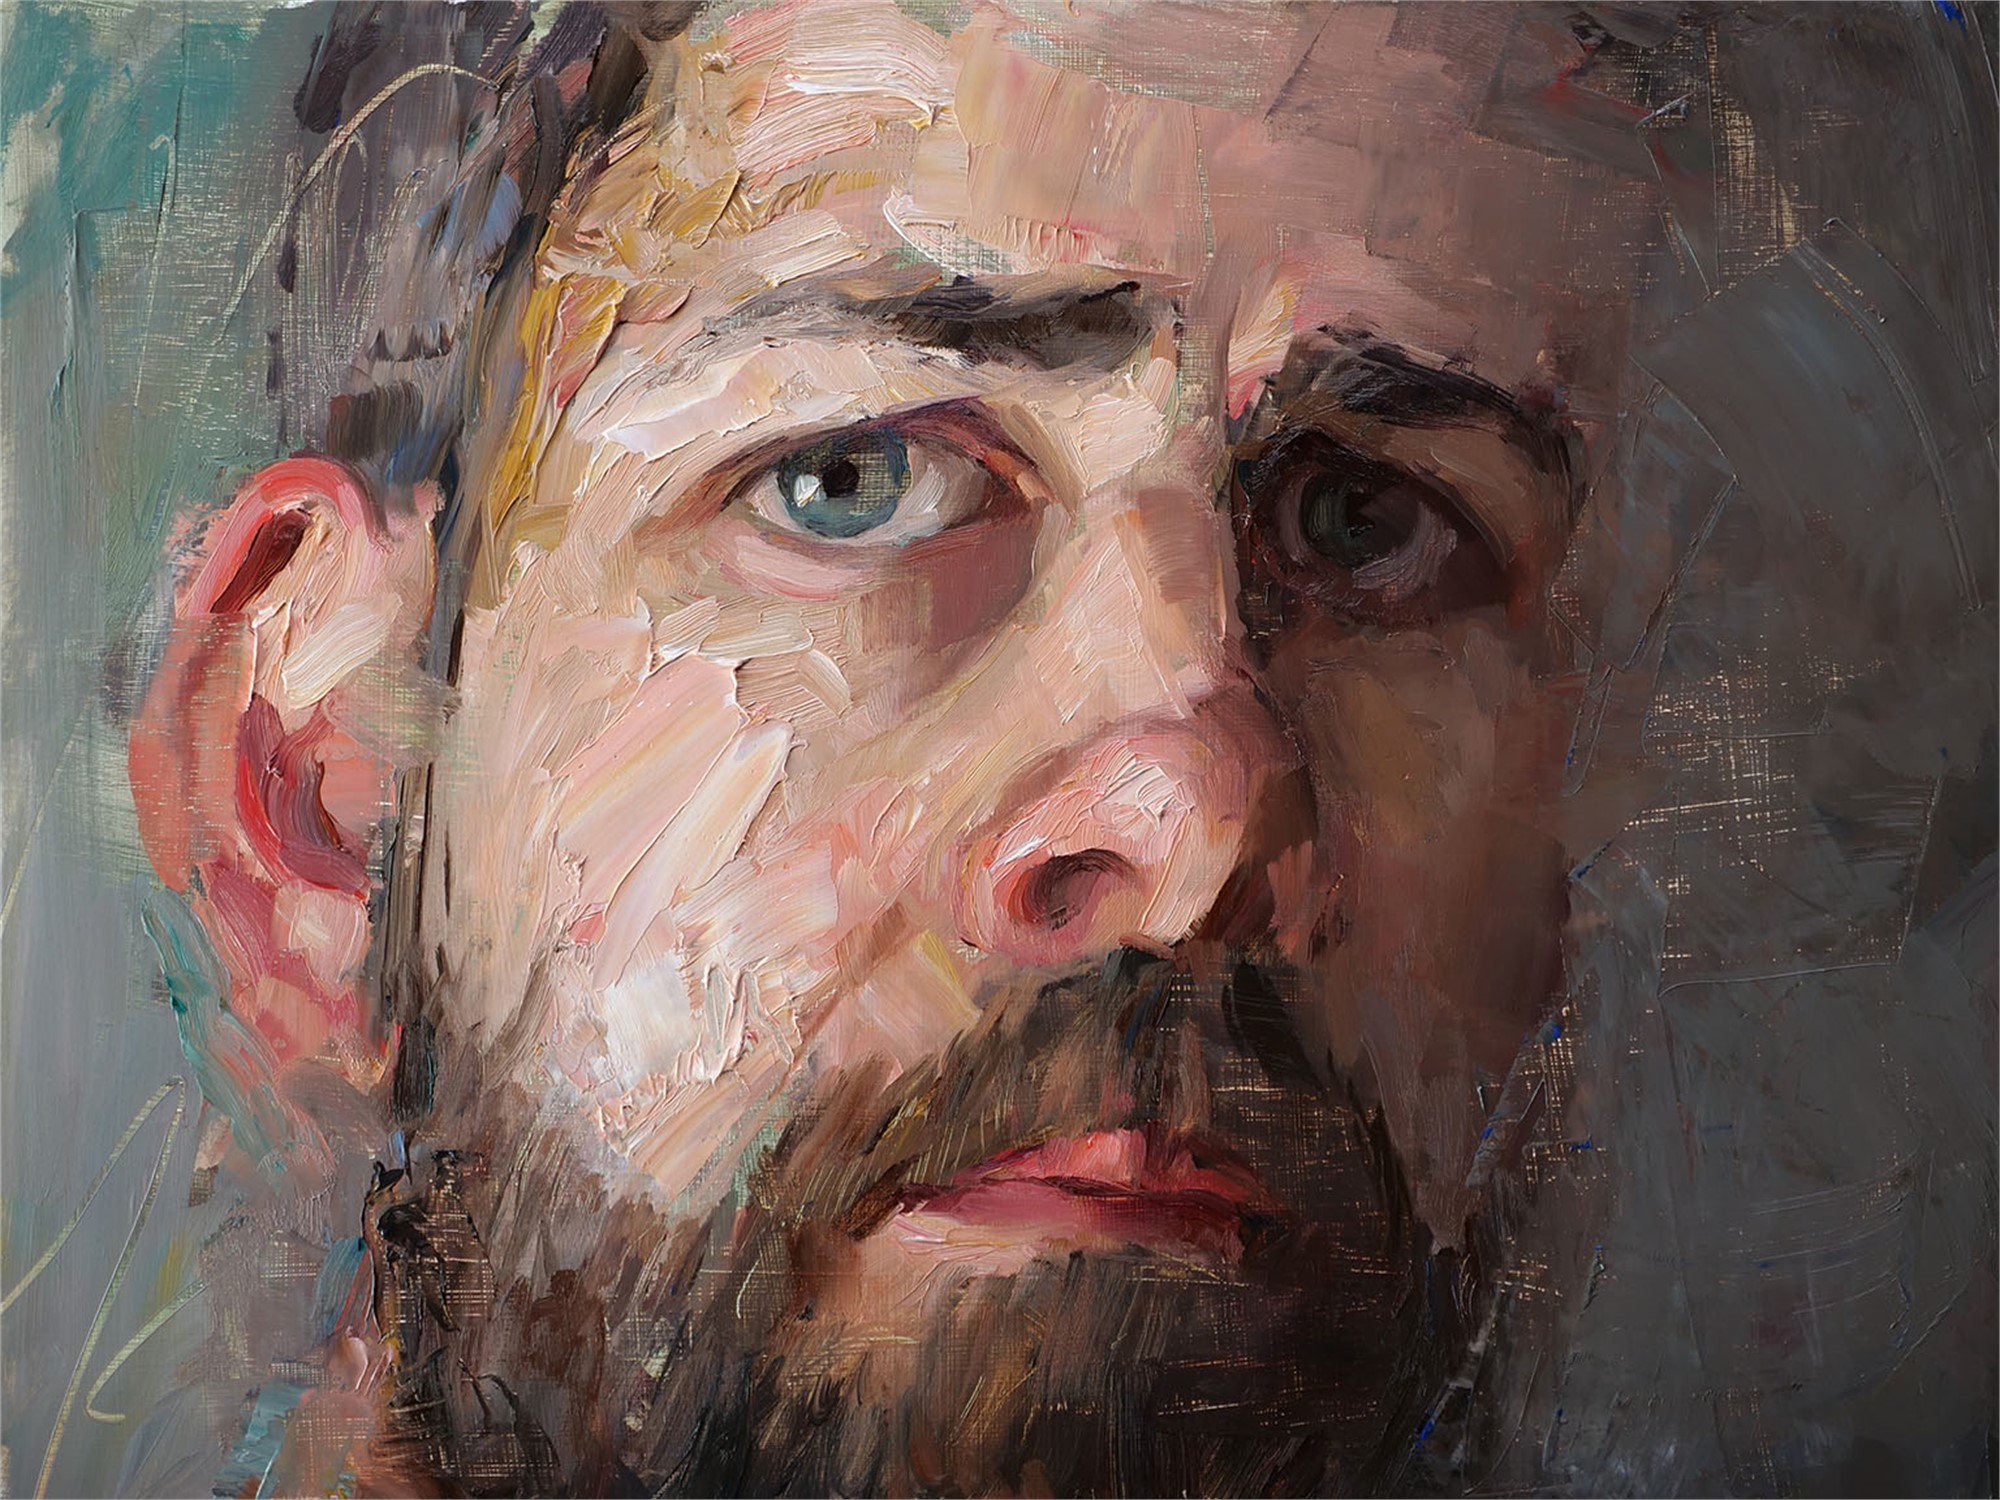 Self Portrait by Matt Talbert